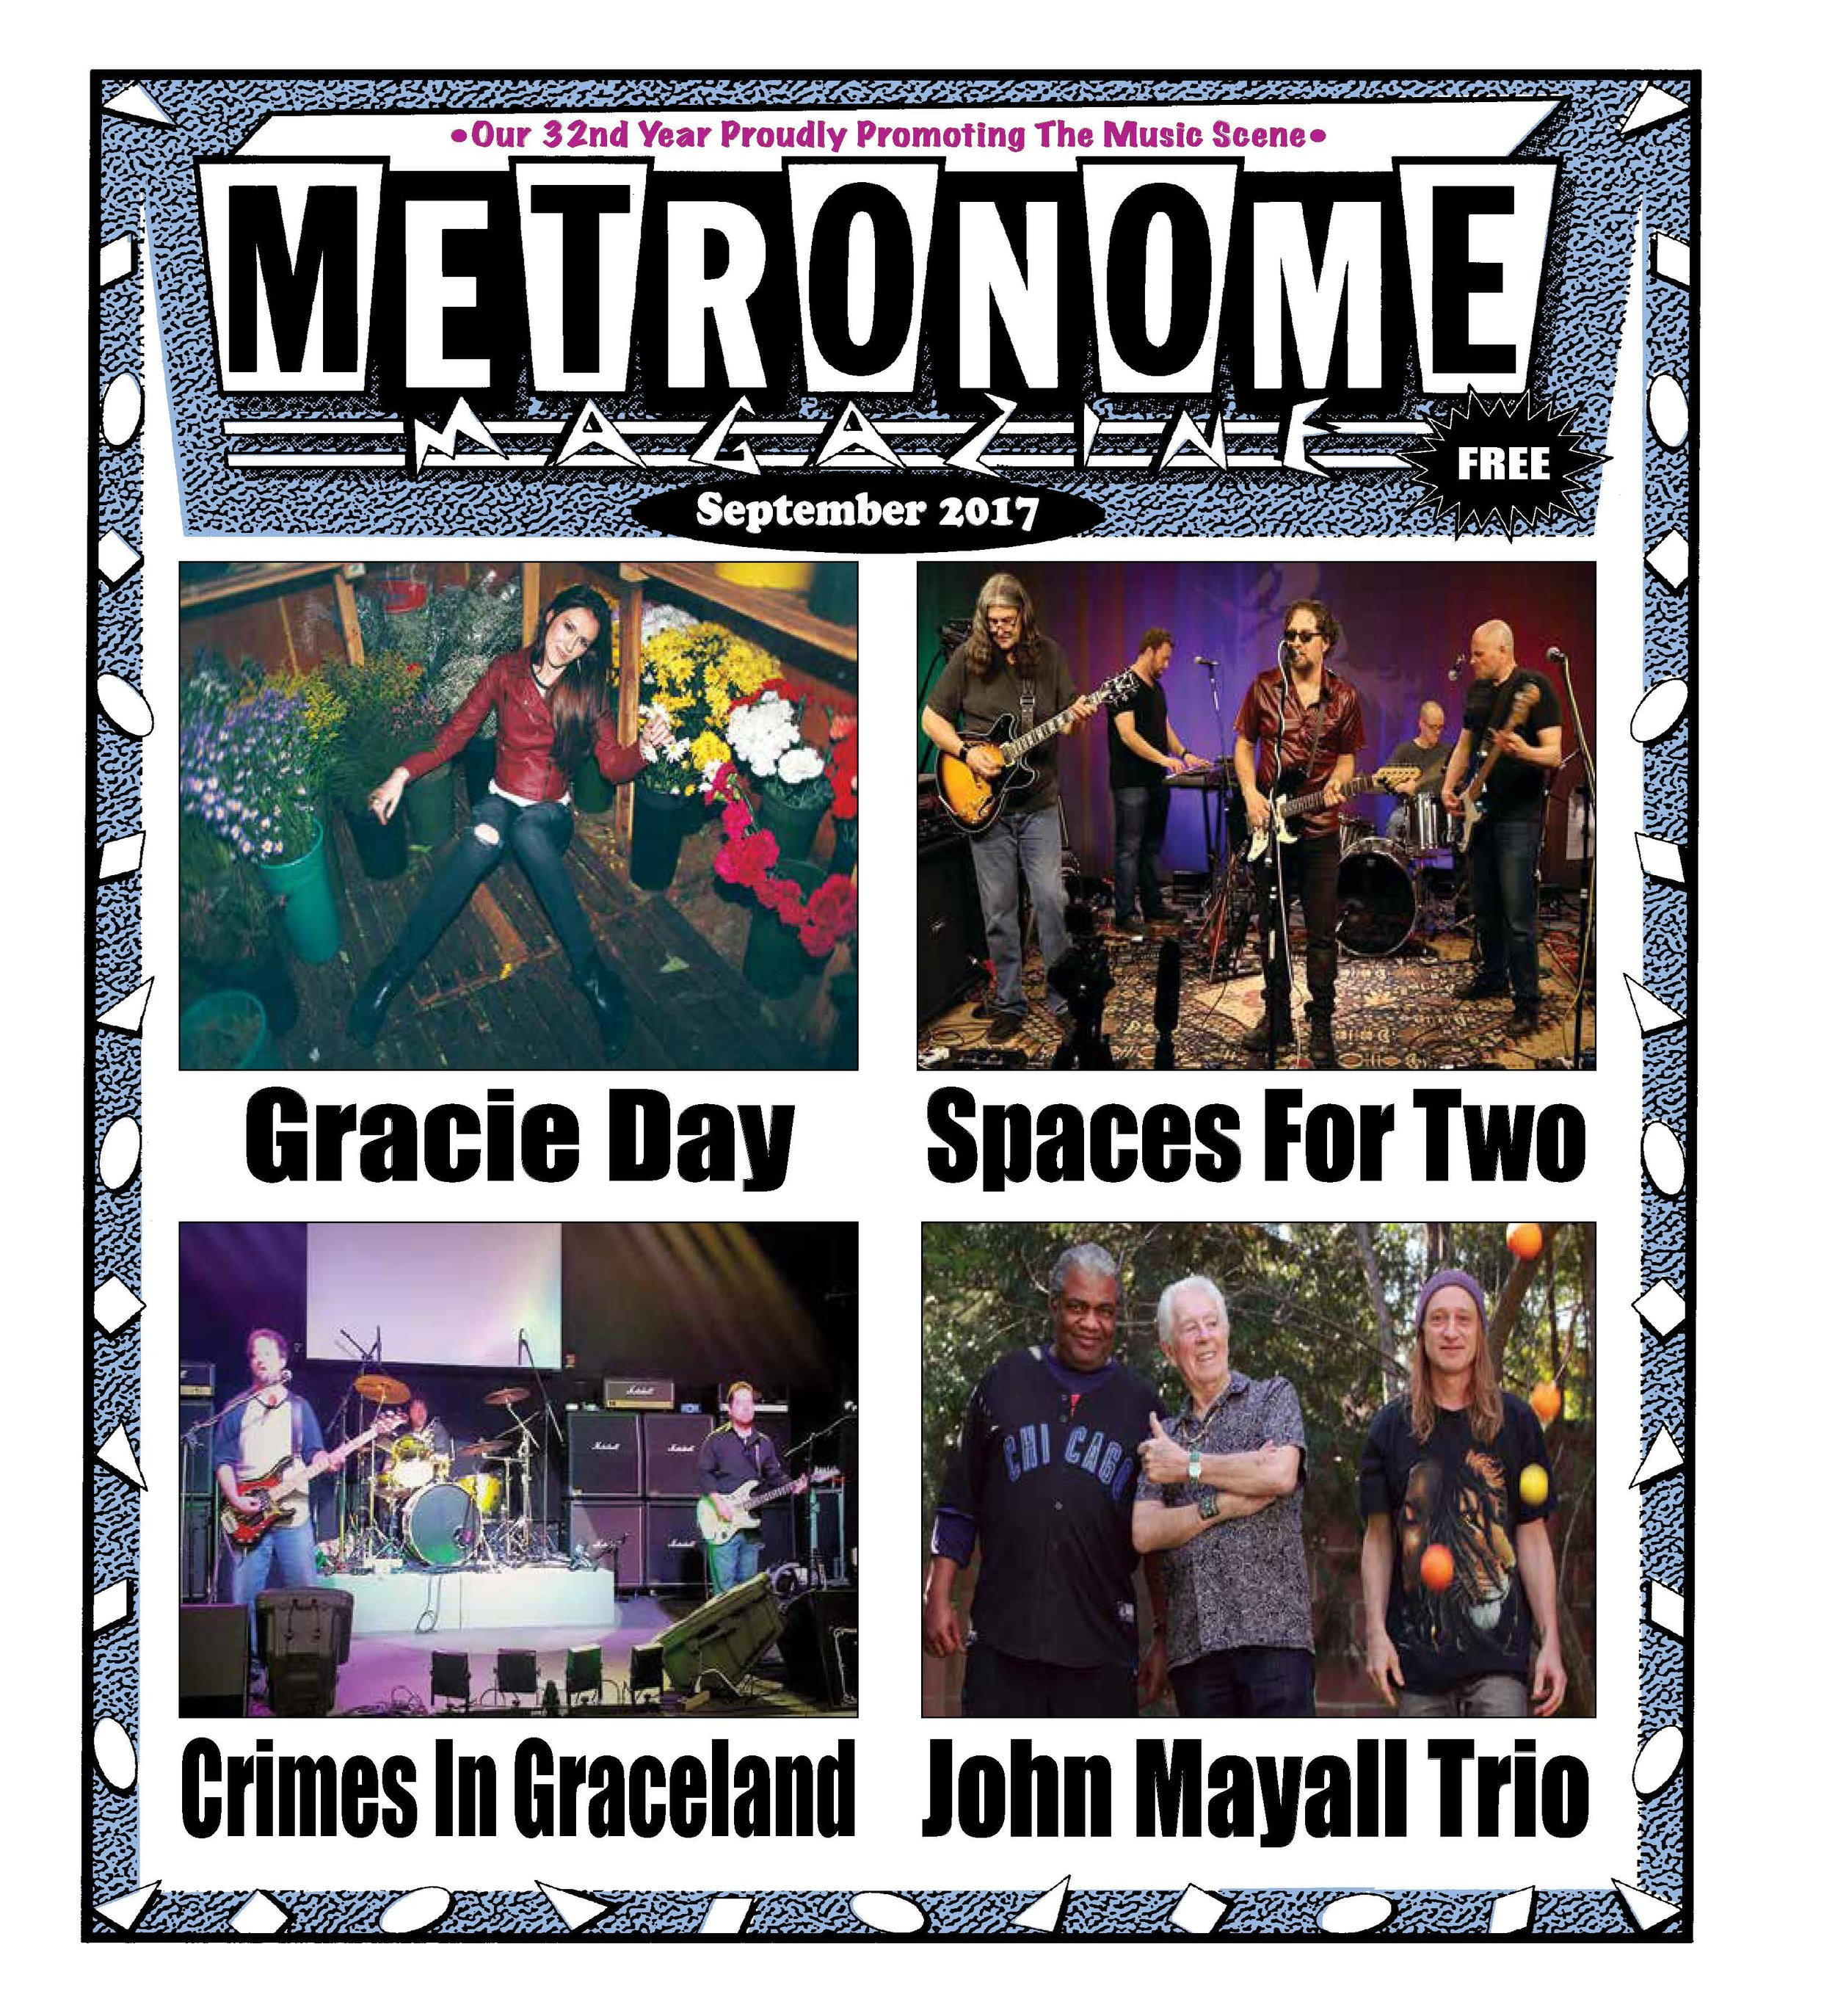 Spaces For Two - Cover- Metronome September 2017_Page_01.jpg